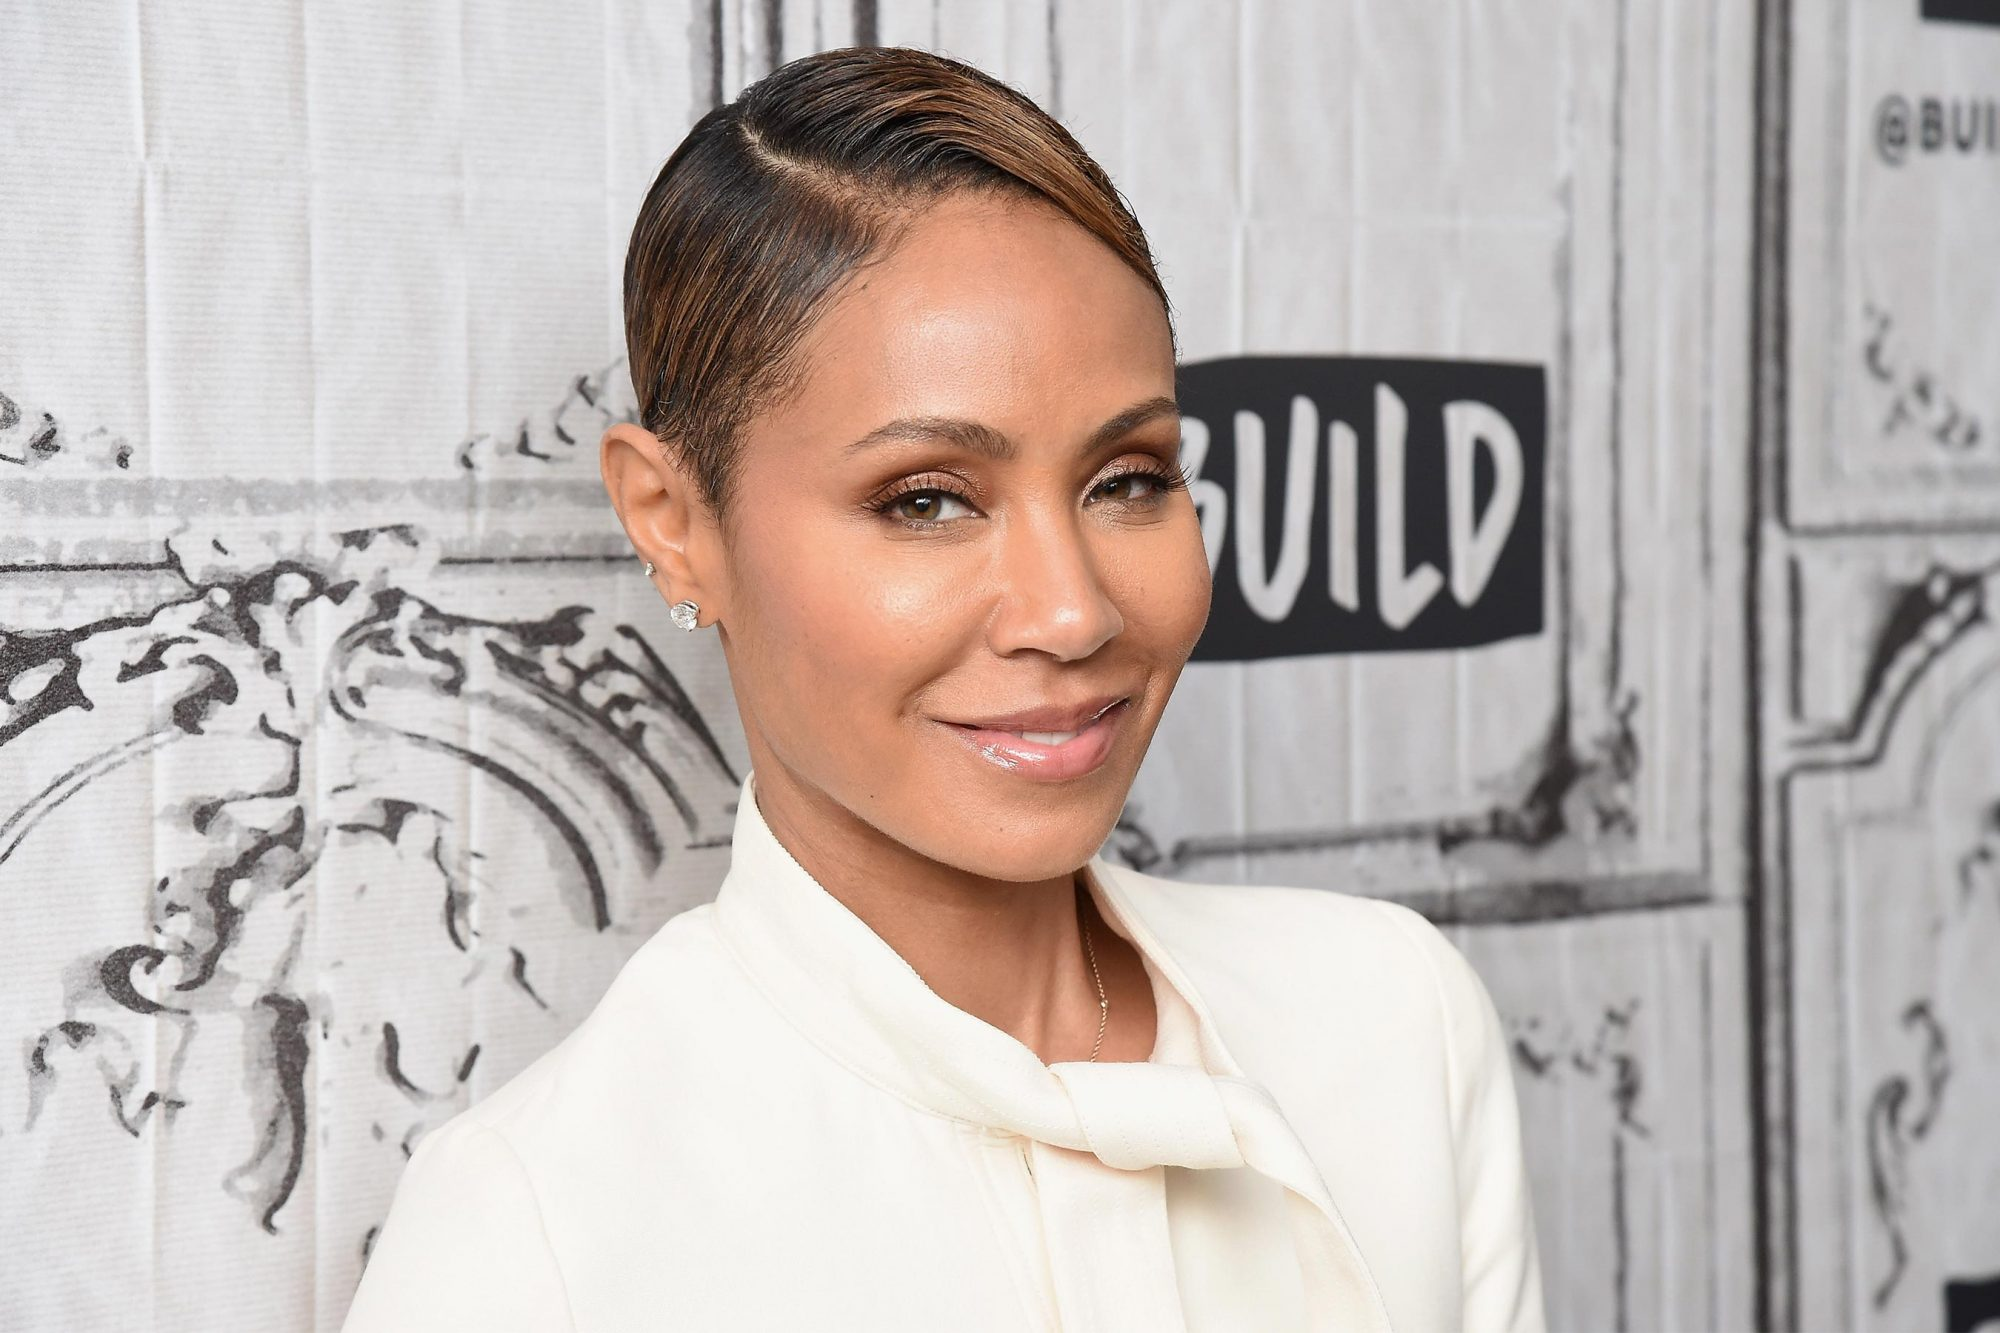 NEW YORK, NEW YORK - JANUARY 22: Jada Pinkett Smith visits the Build Series to discuss the web TV talk show 'Red Table Talk' at Build Studio on January 22, 2019 in New York City. (Photo by Gary Gershoff/WireImage)